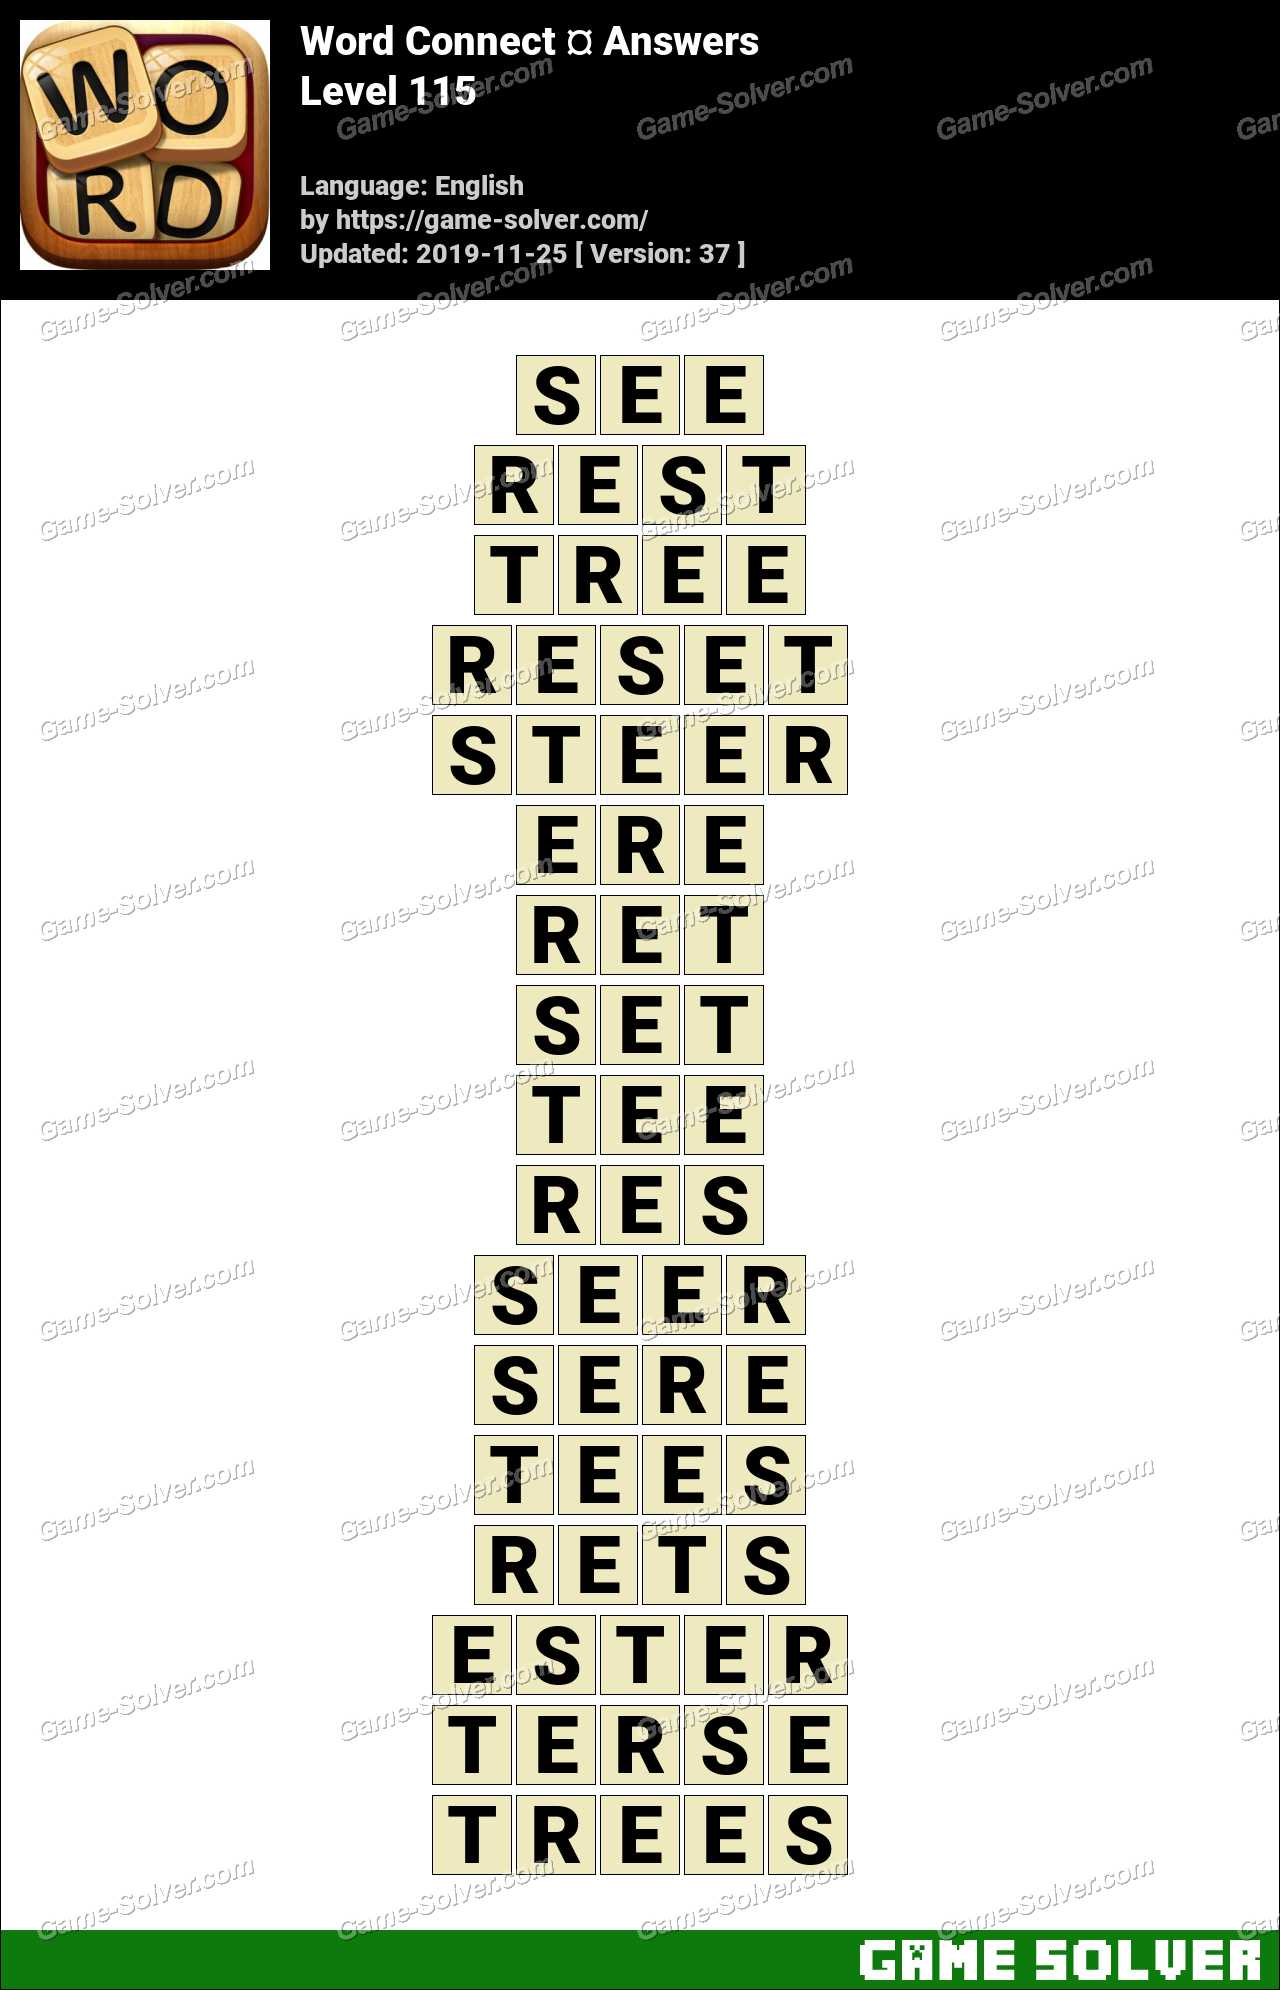 Word Connect Level 115 Answers